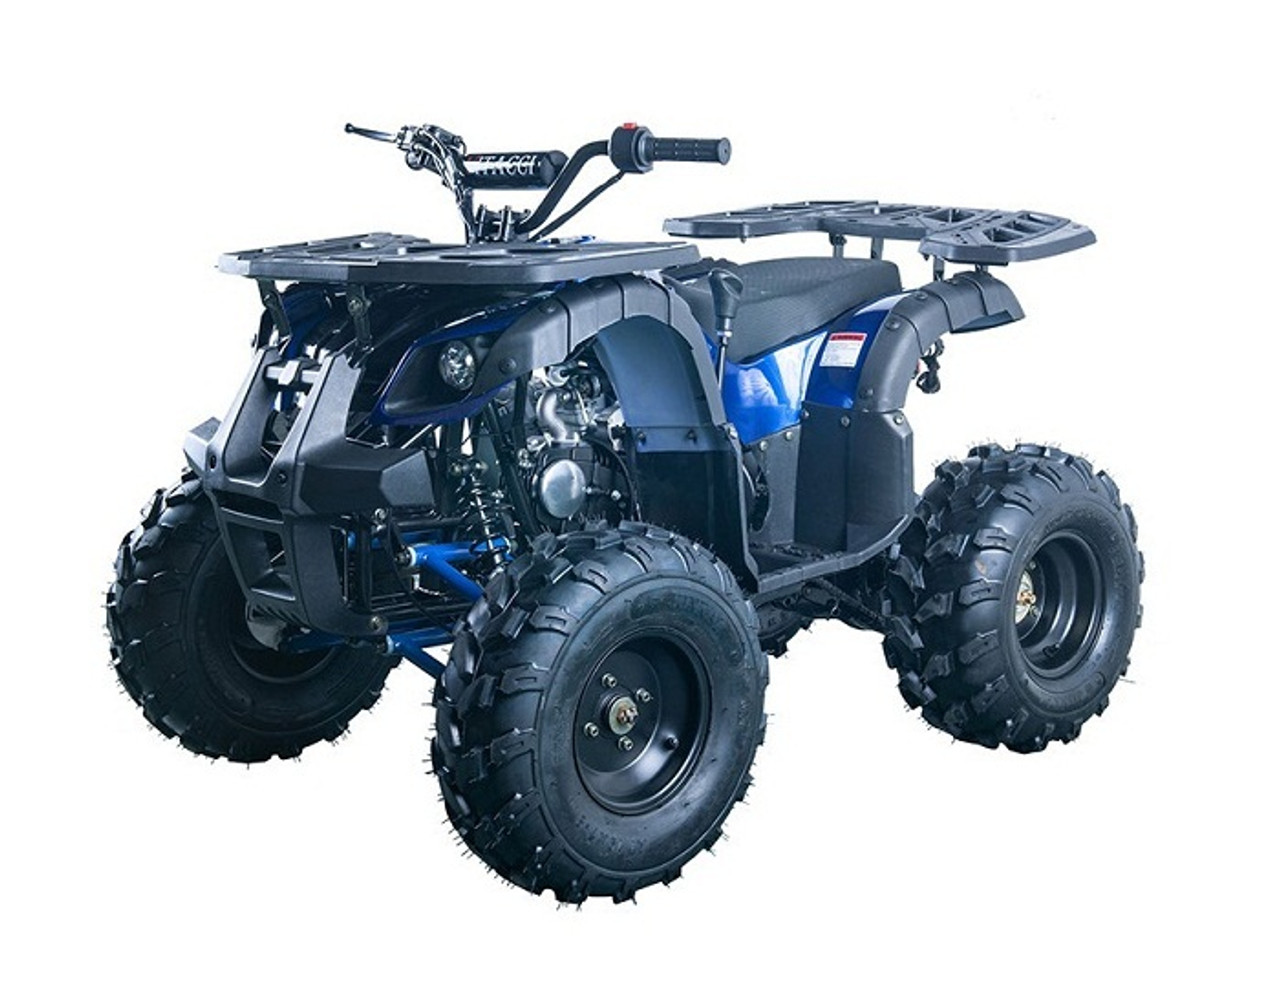 Armoured Vehicles Latin America ⁓ These 125cc Atv